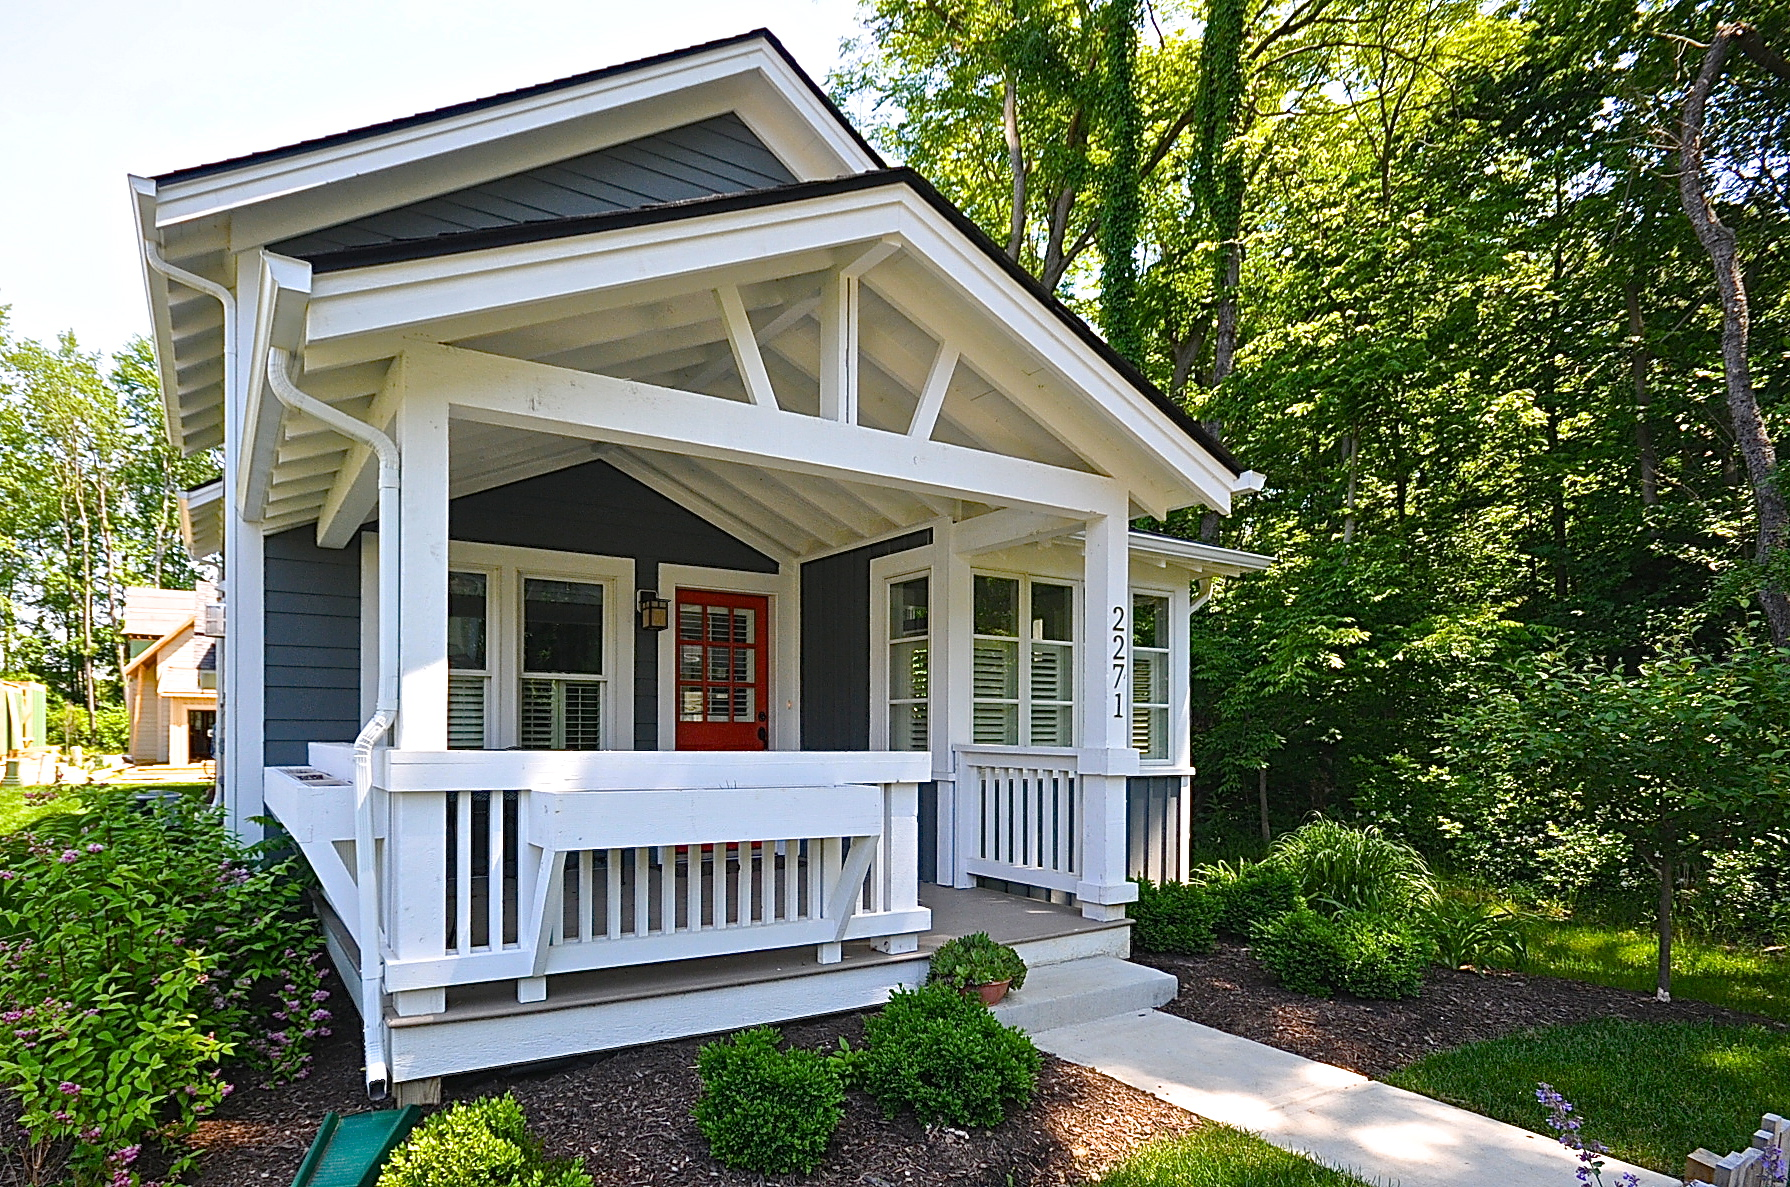 4.  Wooded Cottage Homesites : Homesites #20, 30, and 31 are the only remaining spots along the southern woods. Here nature is at your windows, your door, and your porch. Explore a walkout basement, wraparound porch, or patio. Just another way to bring the outdoors in and extend your living space out.